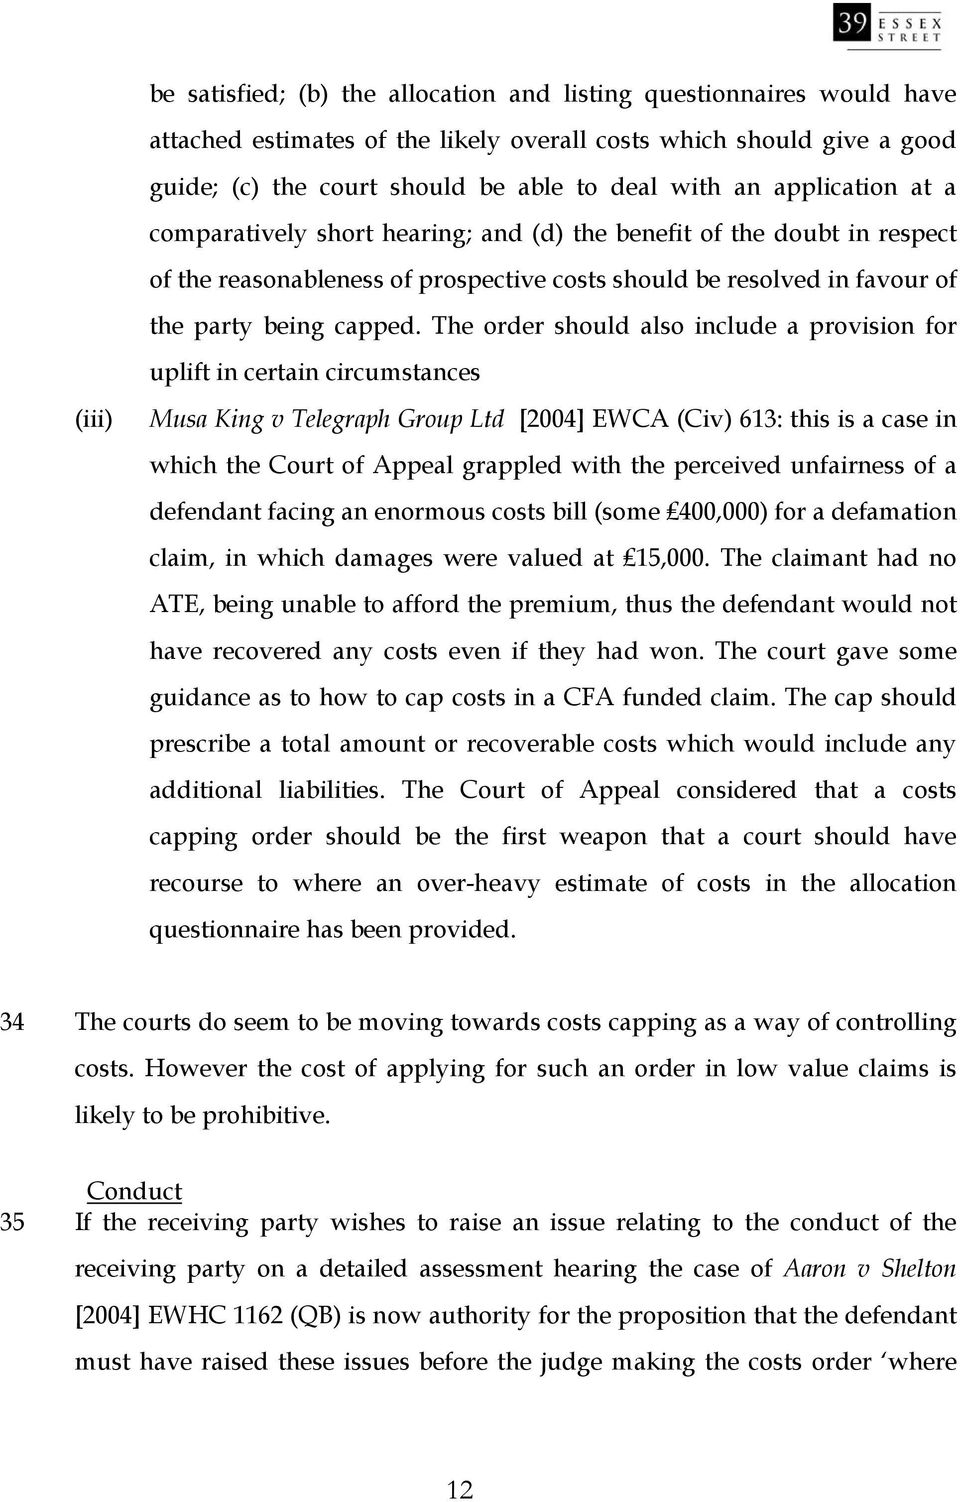 The order should also include a provision for uplift in certain circumstances (iii) Musa King v Telegraph Group Ltd [2004] EWCA (Civ) 613: this is a case in which the Court of Appeal grappled with